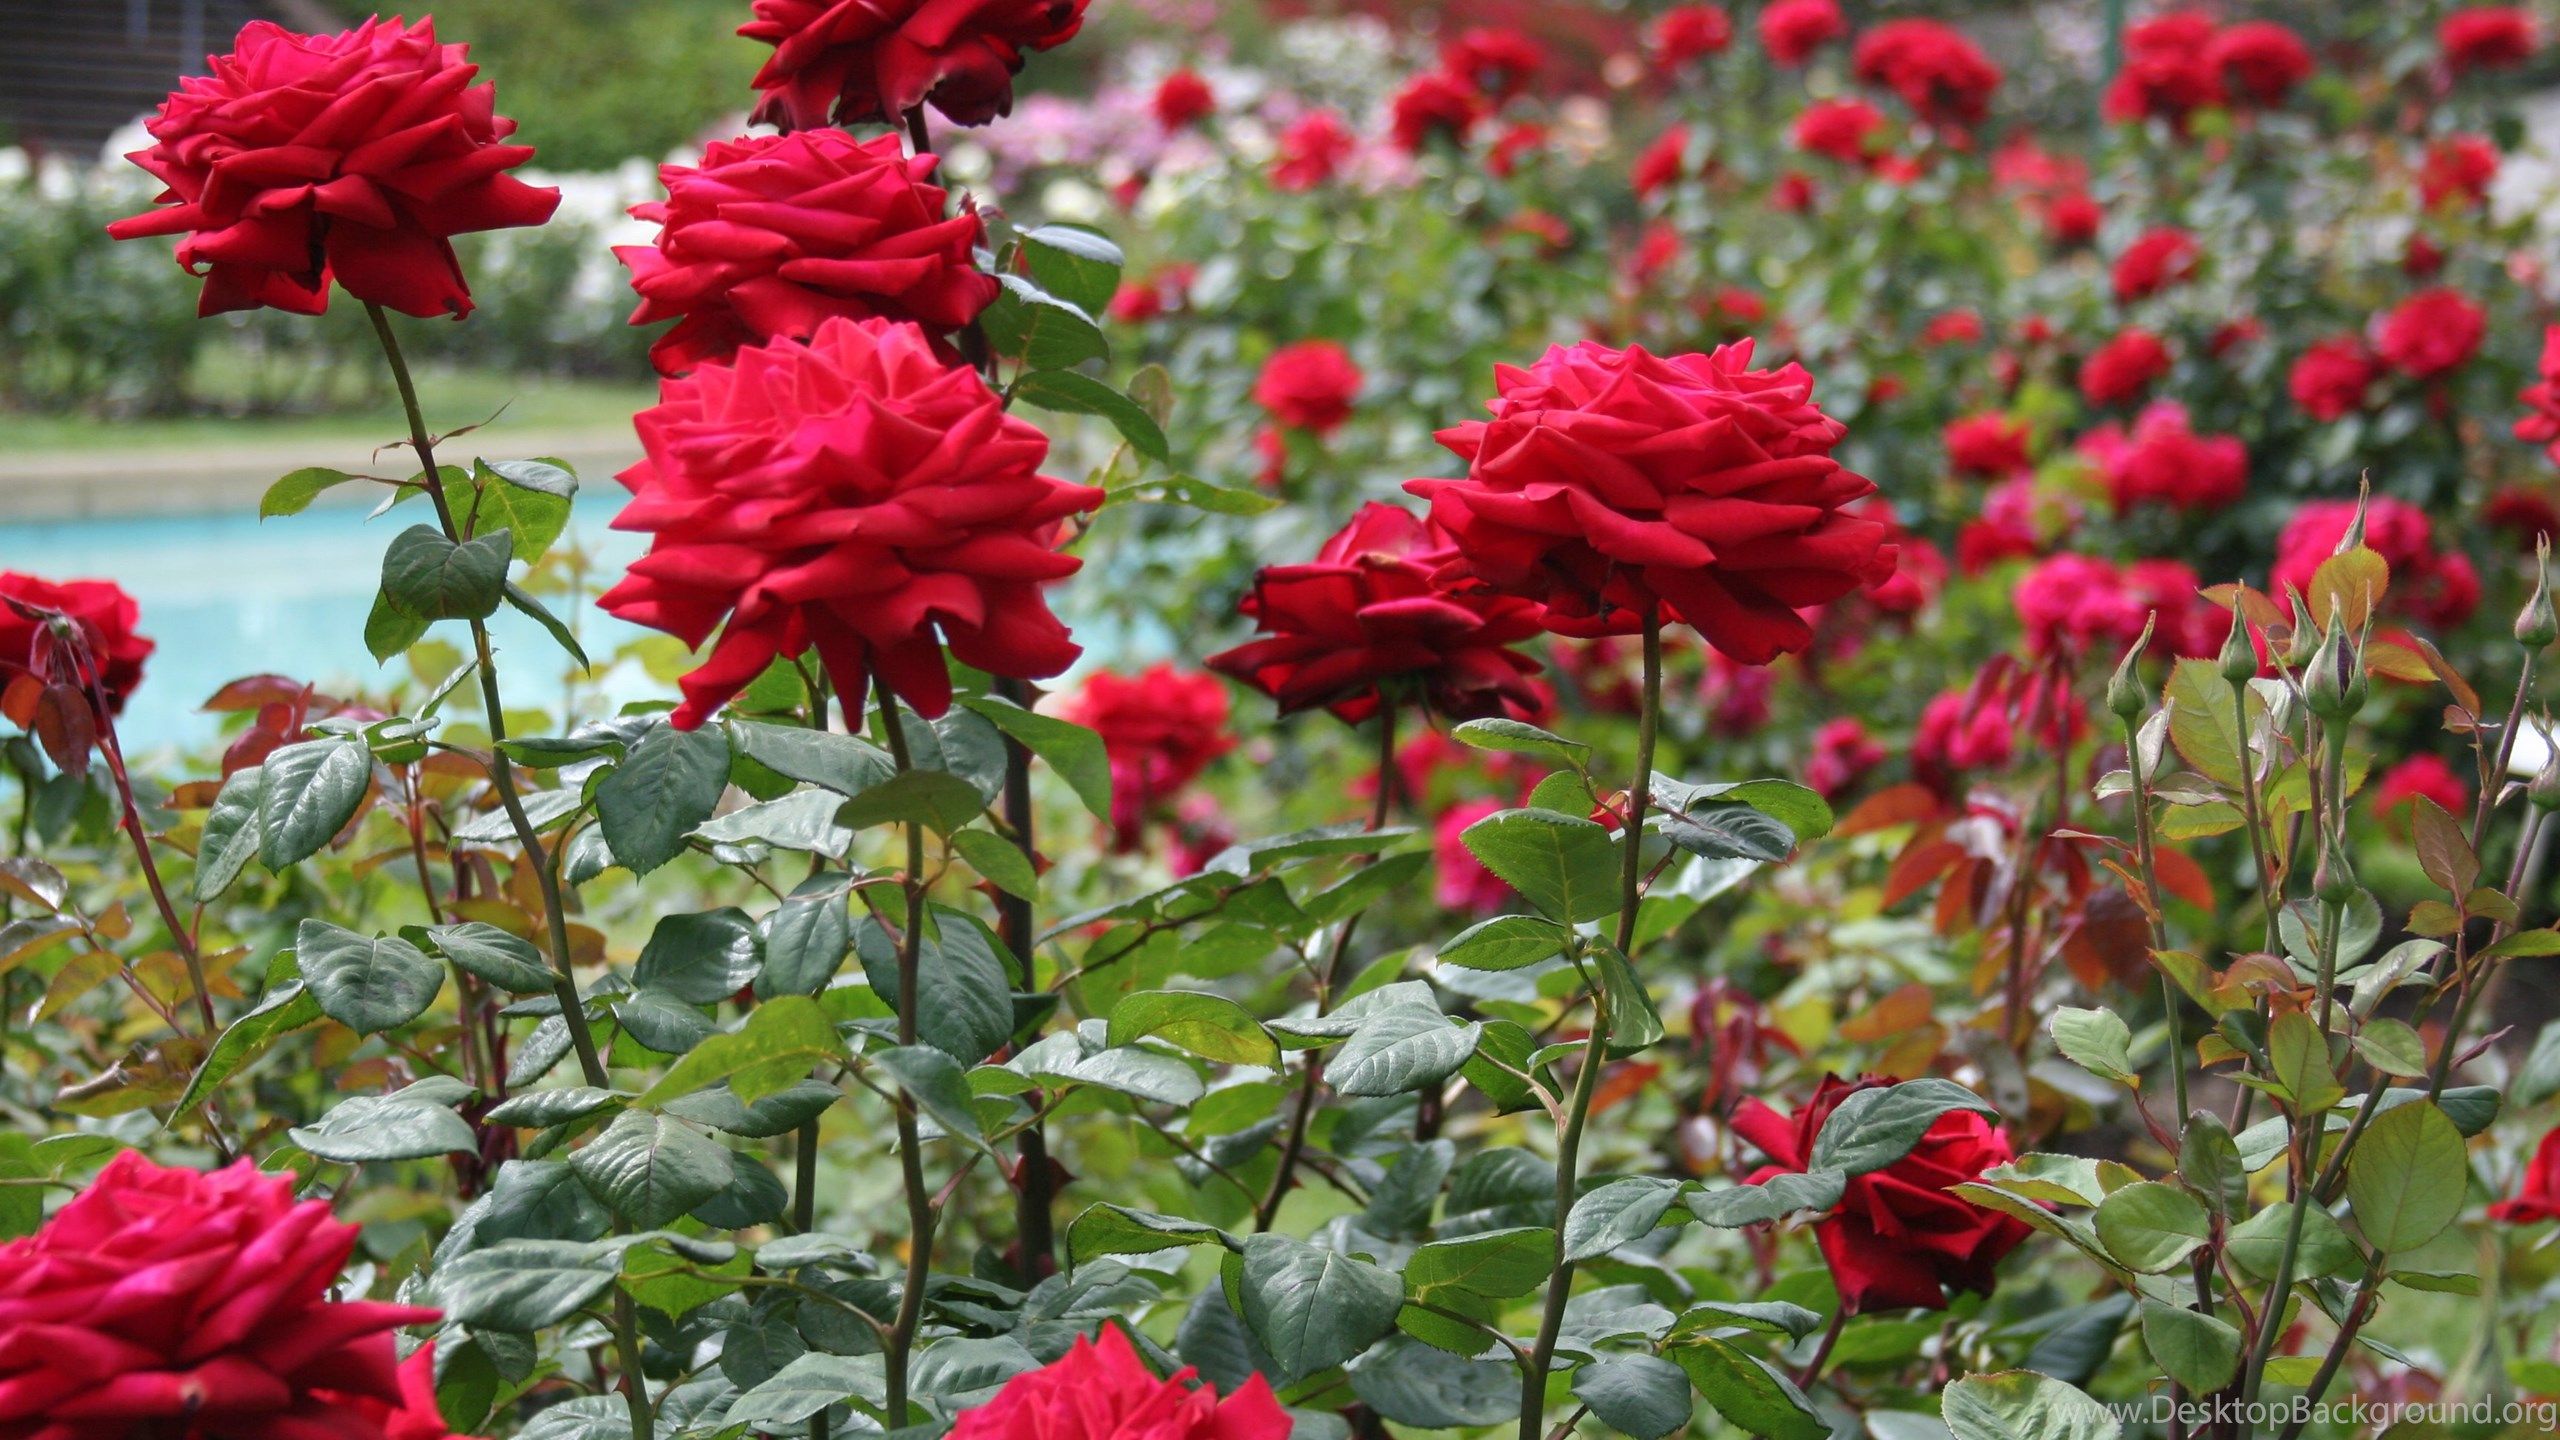 high quality rose garden wallpapers desktop background